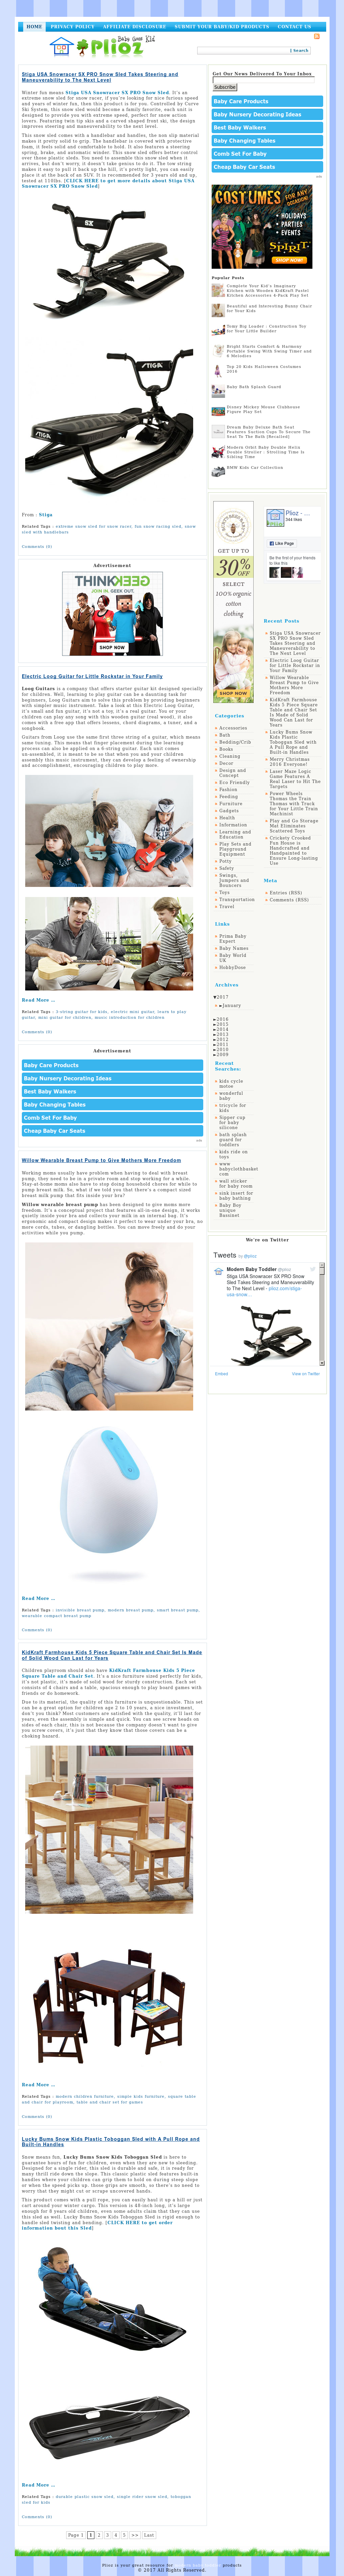 Plioz - Modern Baby, Toddler, And Kid Products Competitors